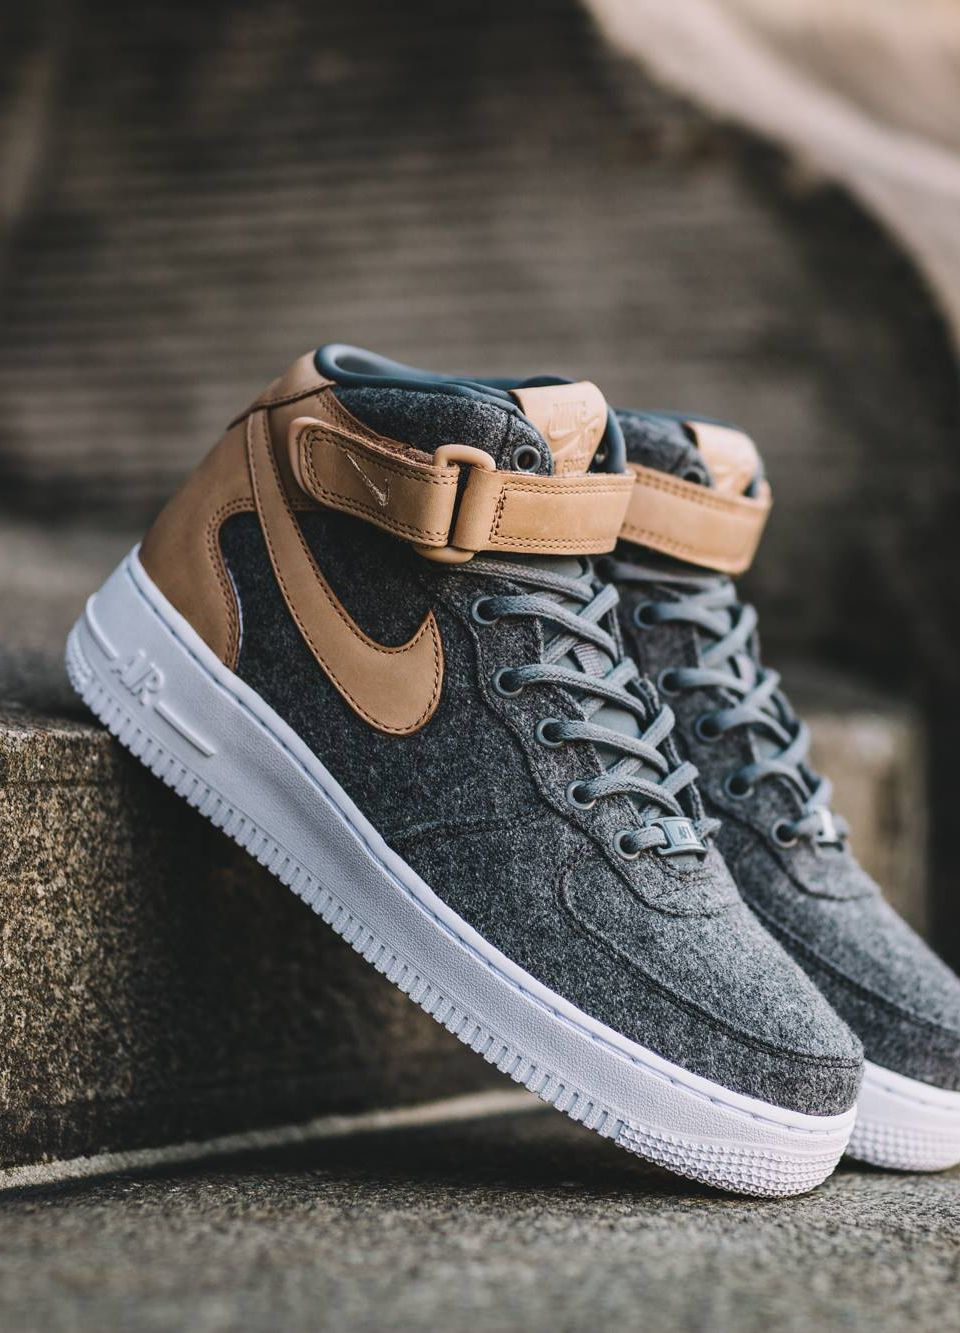 Nike Wmns Air Force 1 '07 Mid Leather Premium | Moda